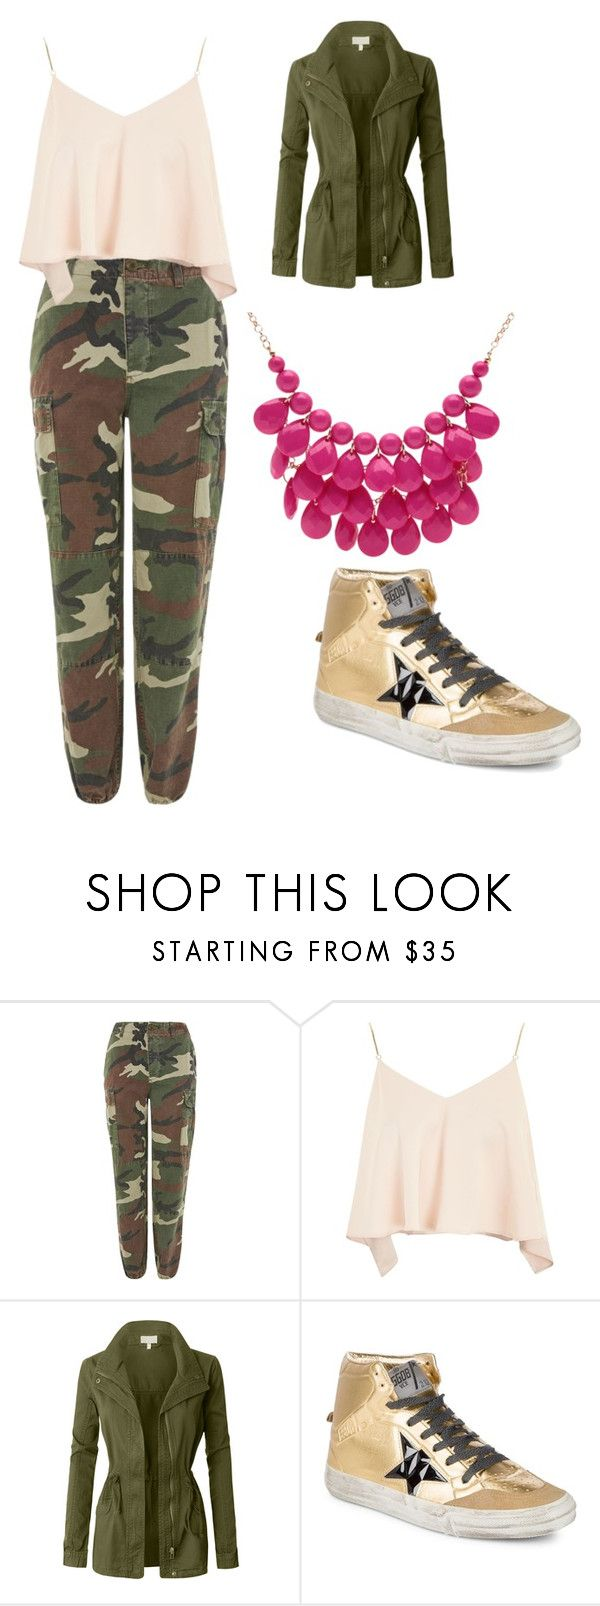 """""""army pants"""" by explorer-14926259901 on Polyvore featuring Topshop, LE3NO, Golden Goose and Alexa Starr"""